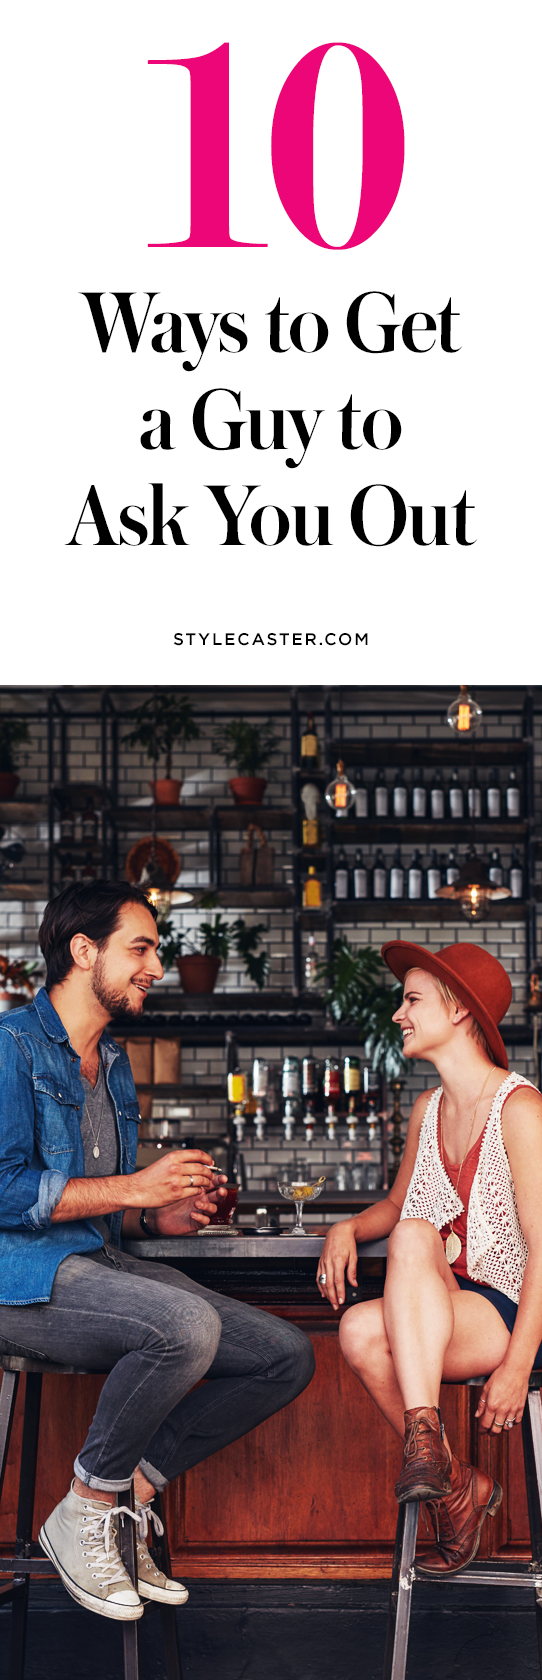 10 tactics to get a guy to ask you out | @stylecaster